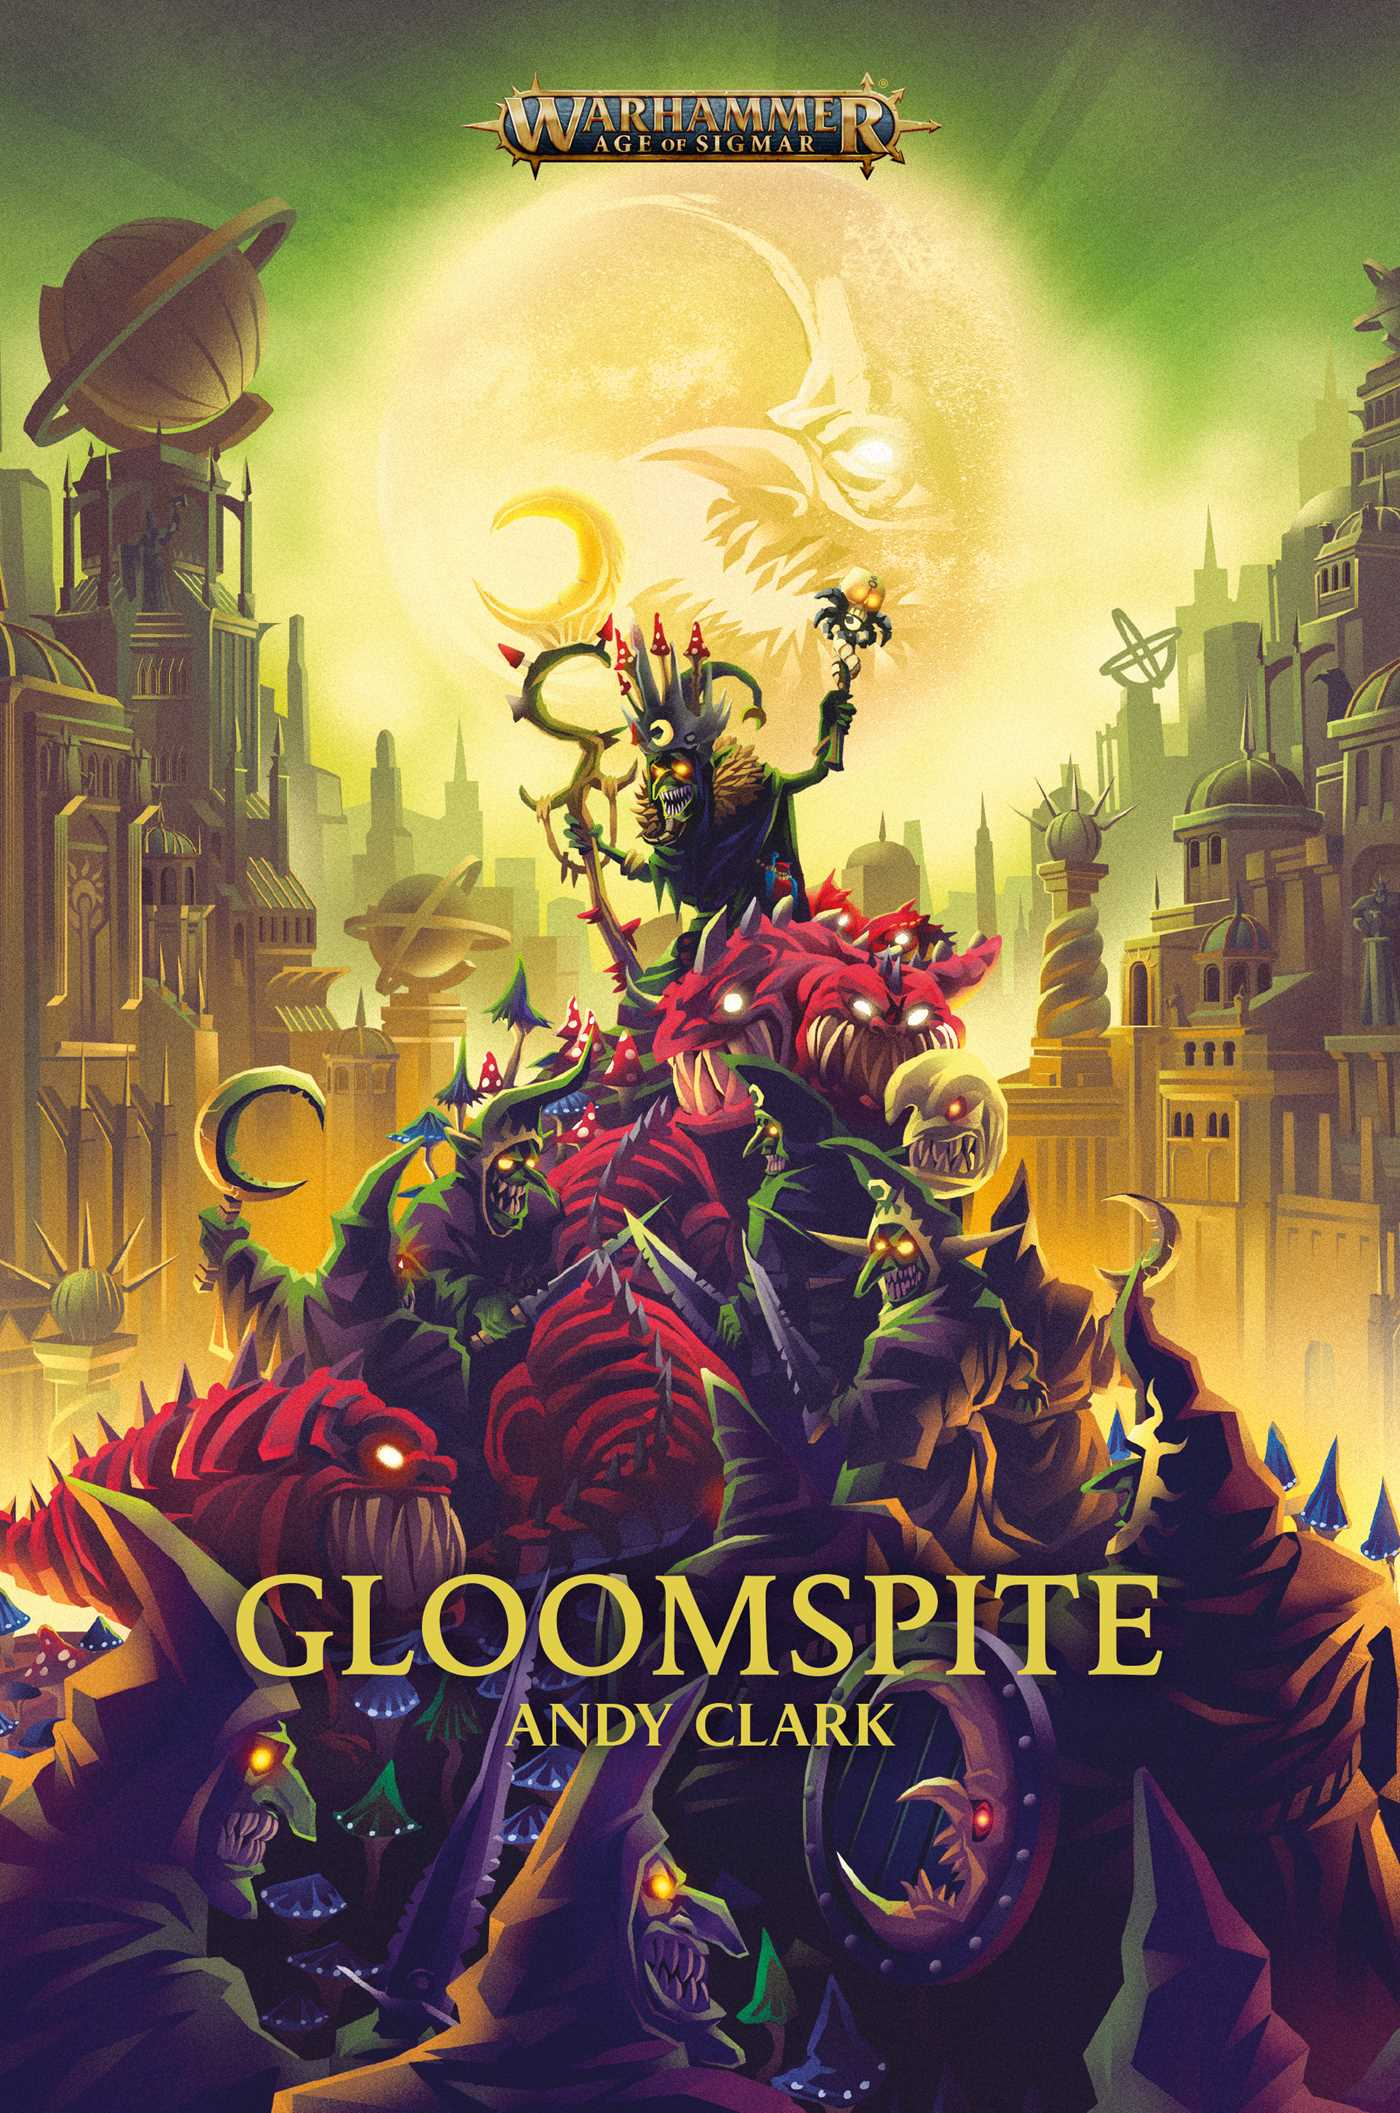 Gloomspite by Andy Clark